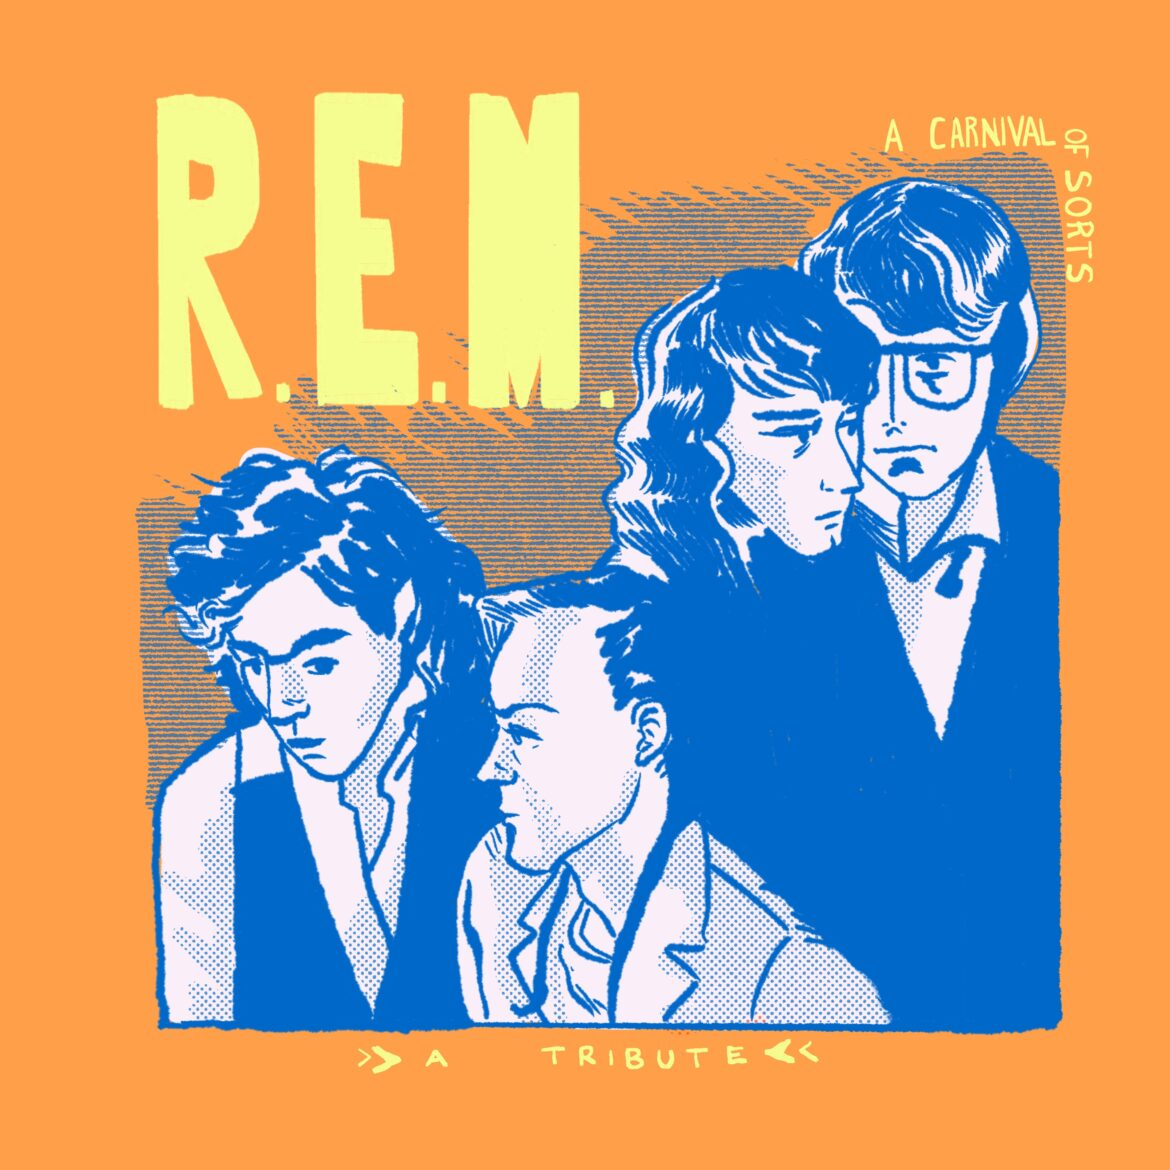 EXCLUSIVE STREAM:  A Carnival of Sorts: A compilation of R.E.M. covers by Various Artists